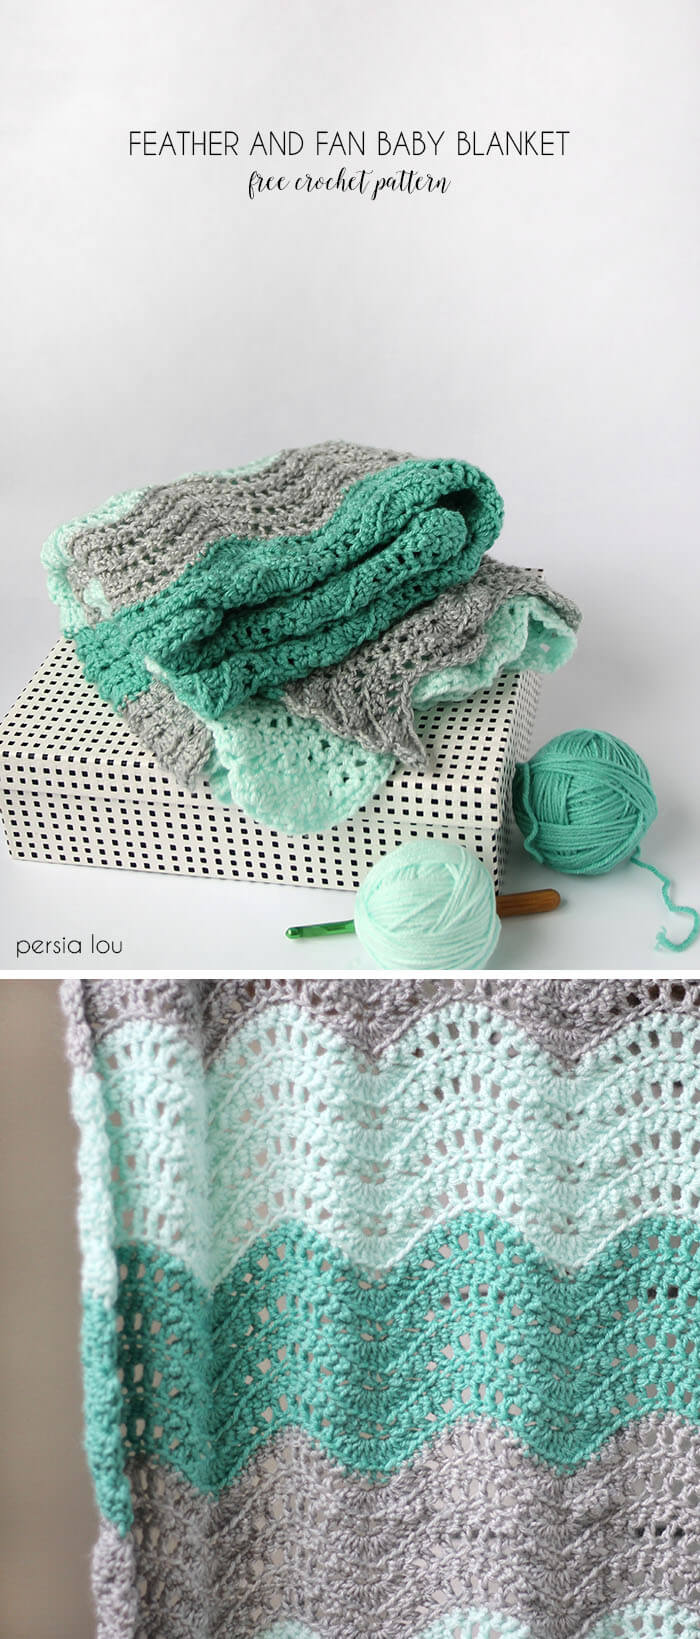 Crochet Feather And Fan Baby Blanket Free Pattern